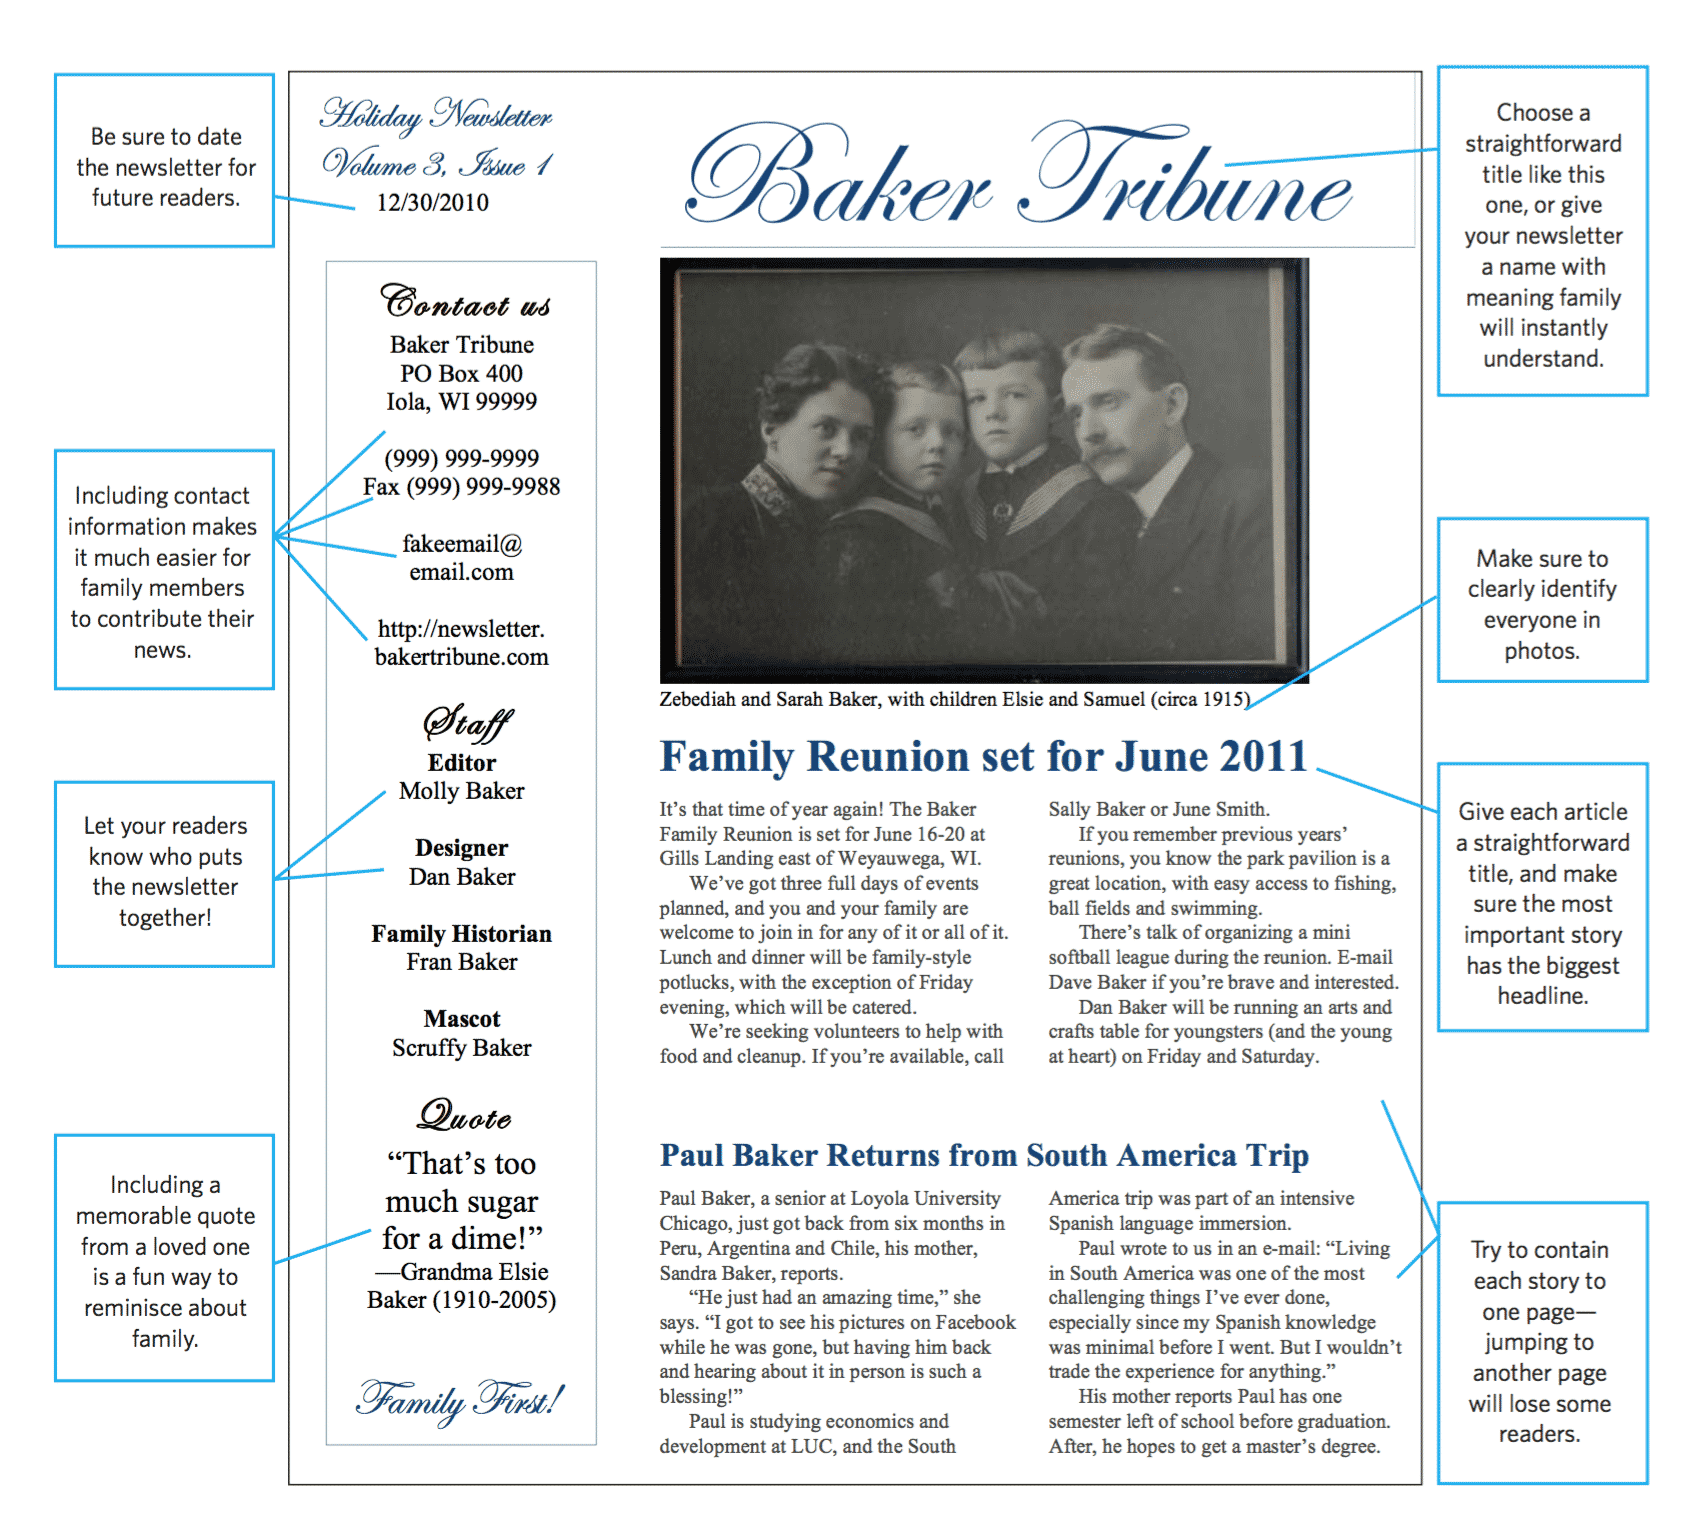 Sample family newsletter design.